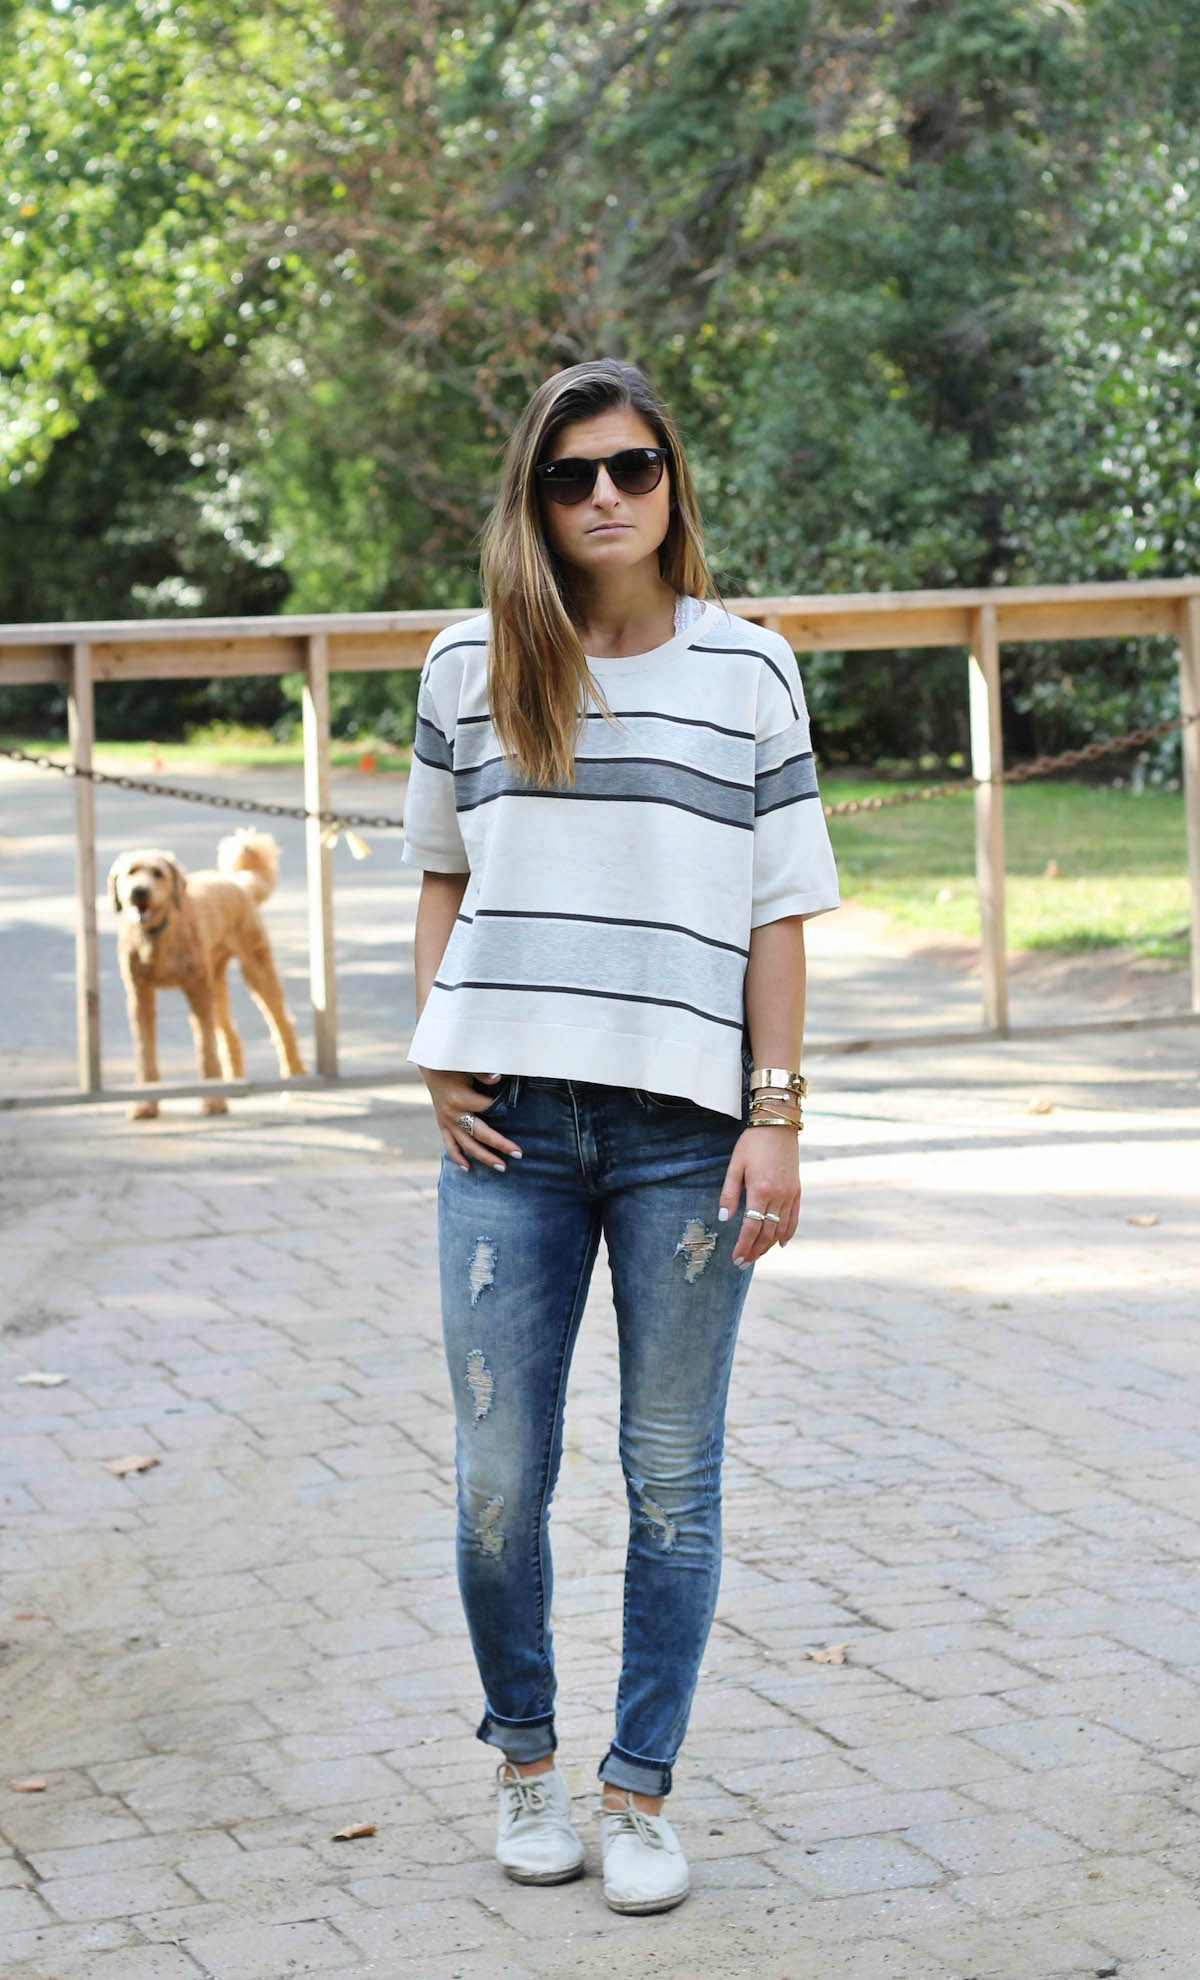 Street style tip of the day: Cozy stripes